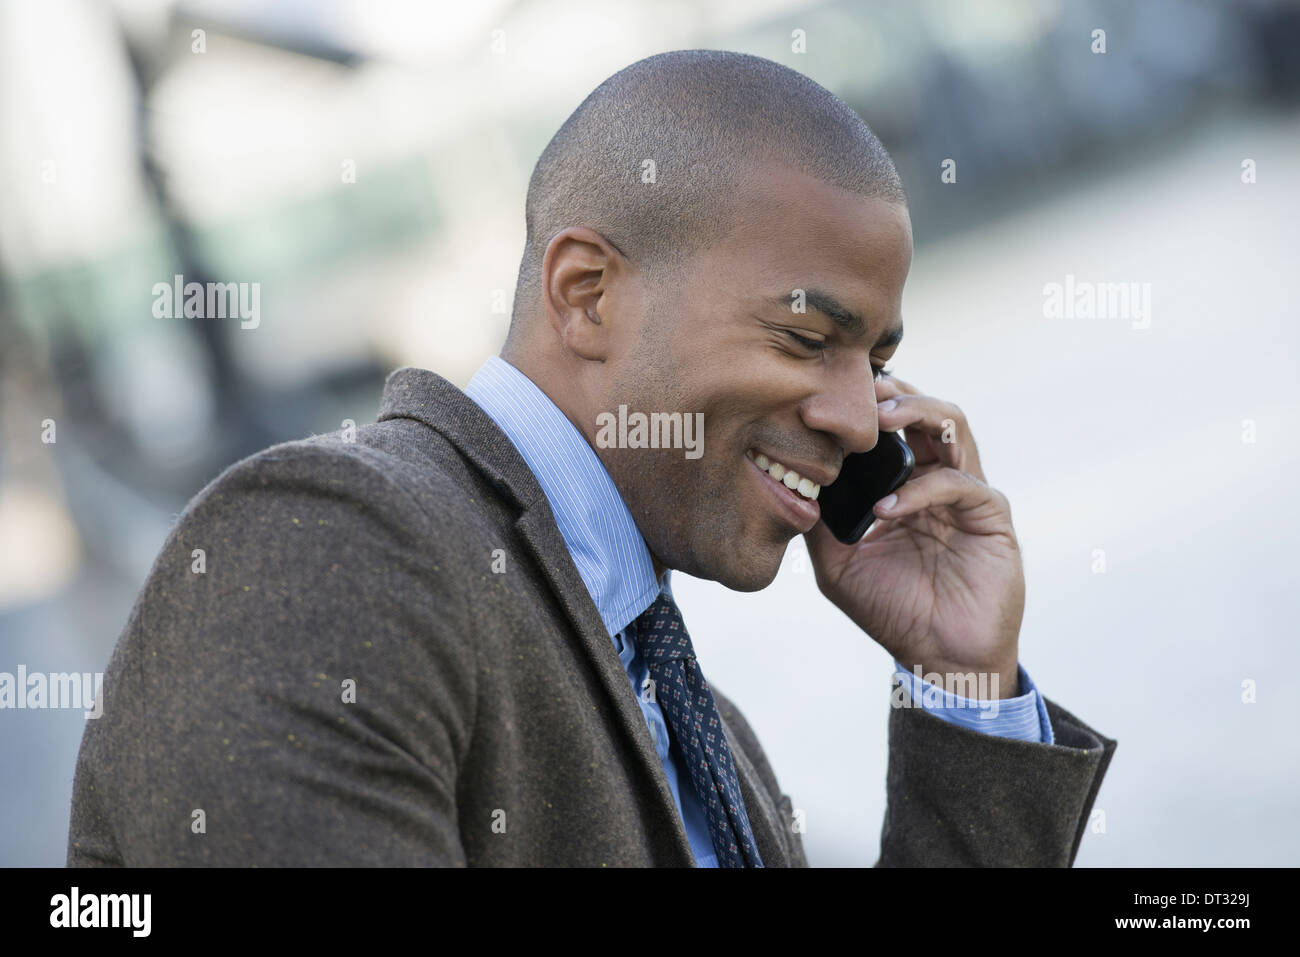 A man seated on a bench making a call on his smart phone - Stock Image